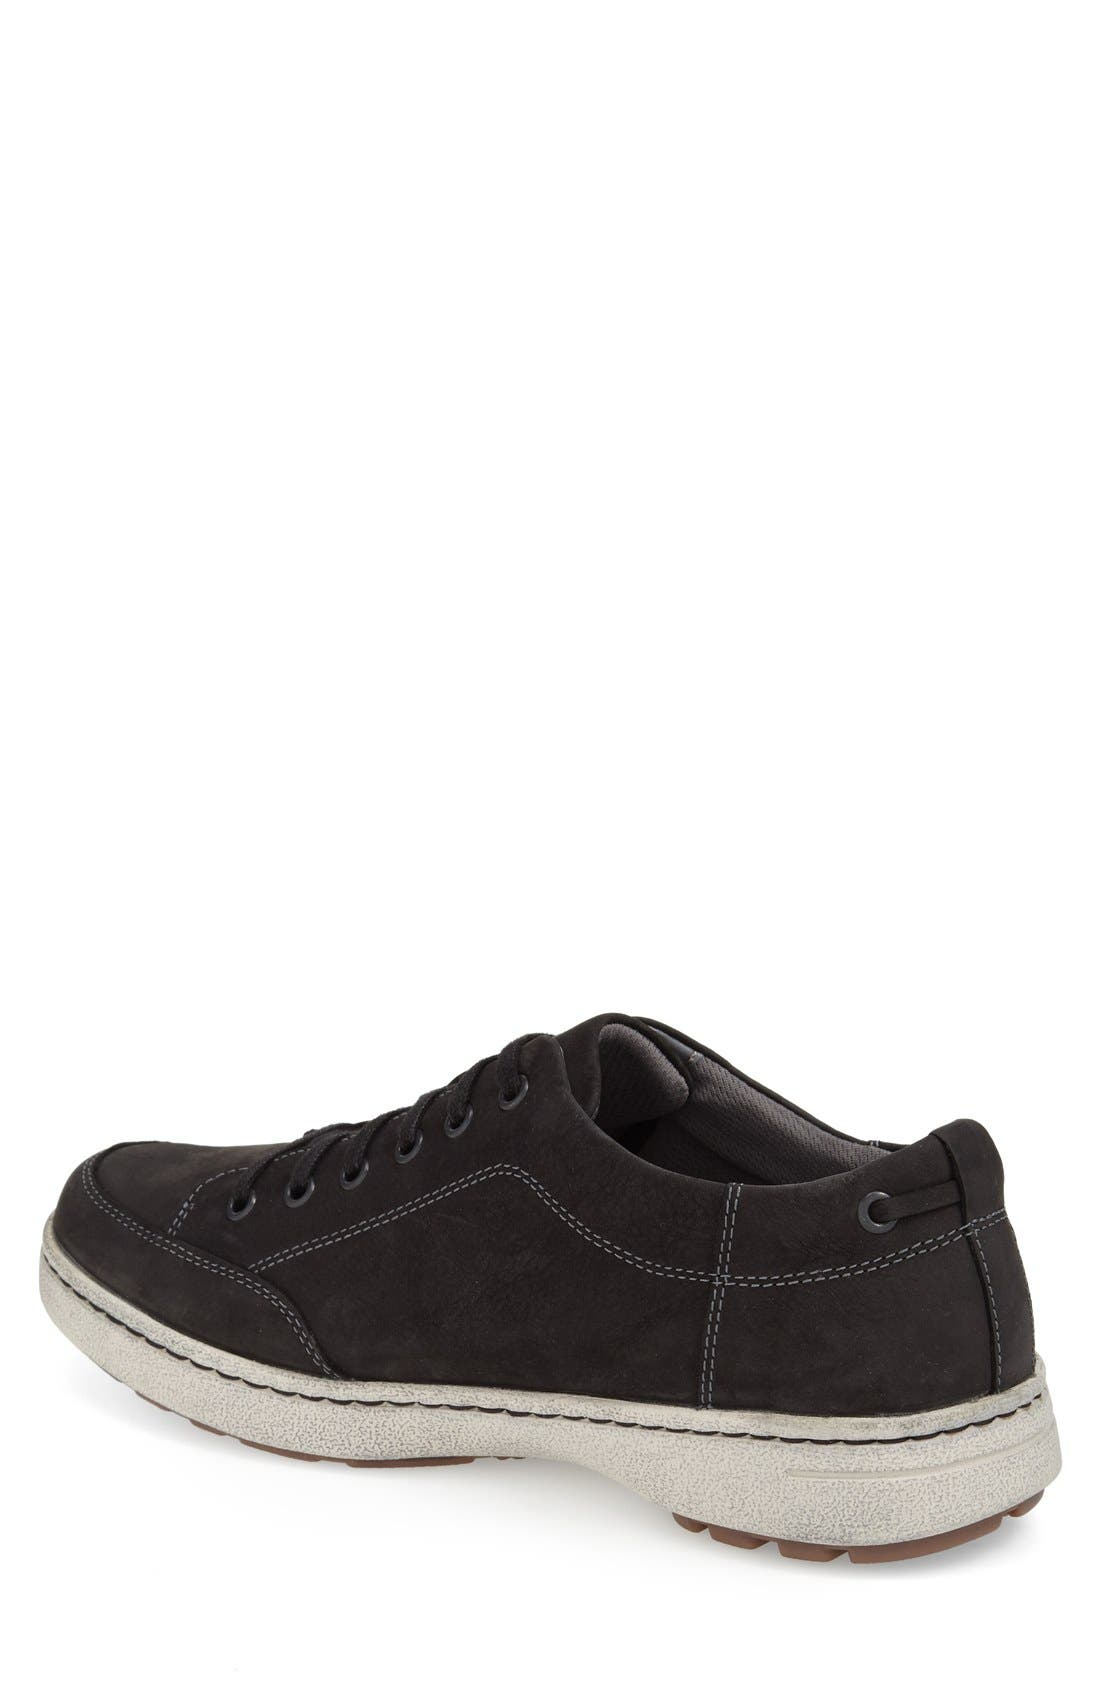 'Vaughn' Water-Resistant Sneaker,                             Alternate thumbnail 2, color,                             Black Milled Nubuck Leather